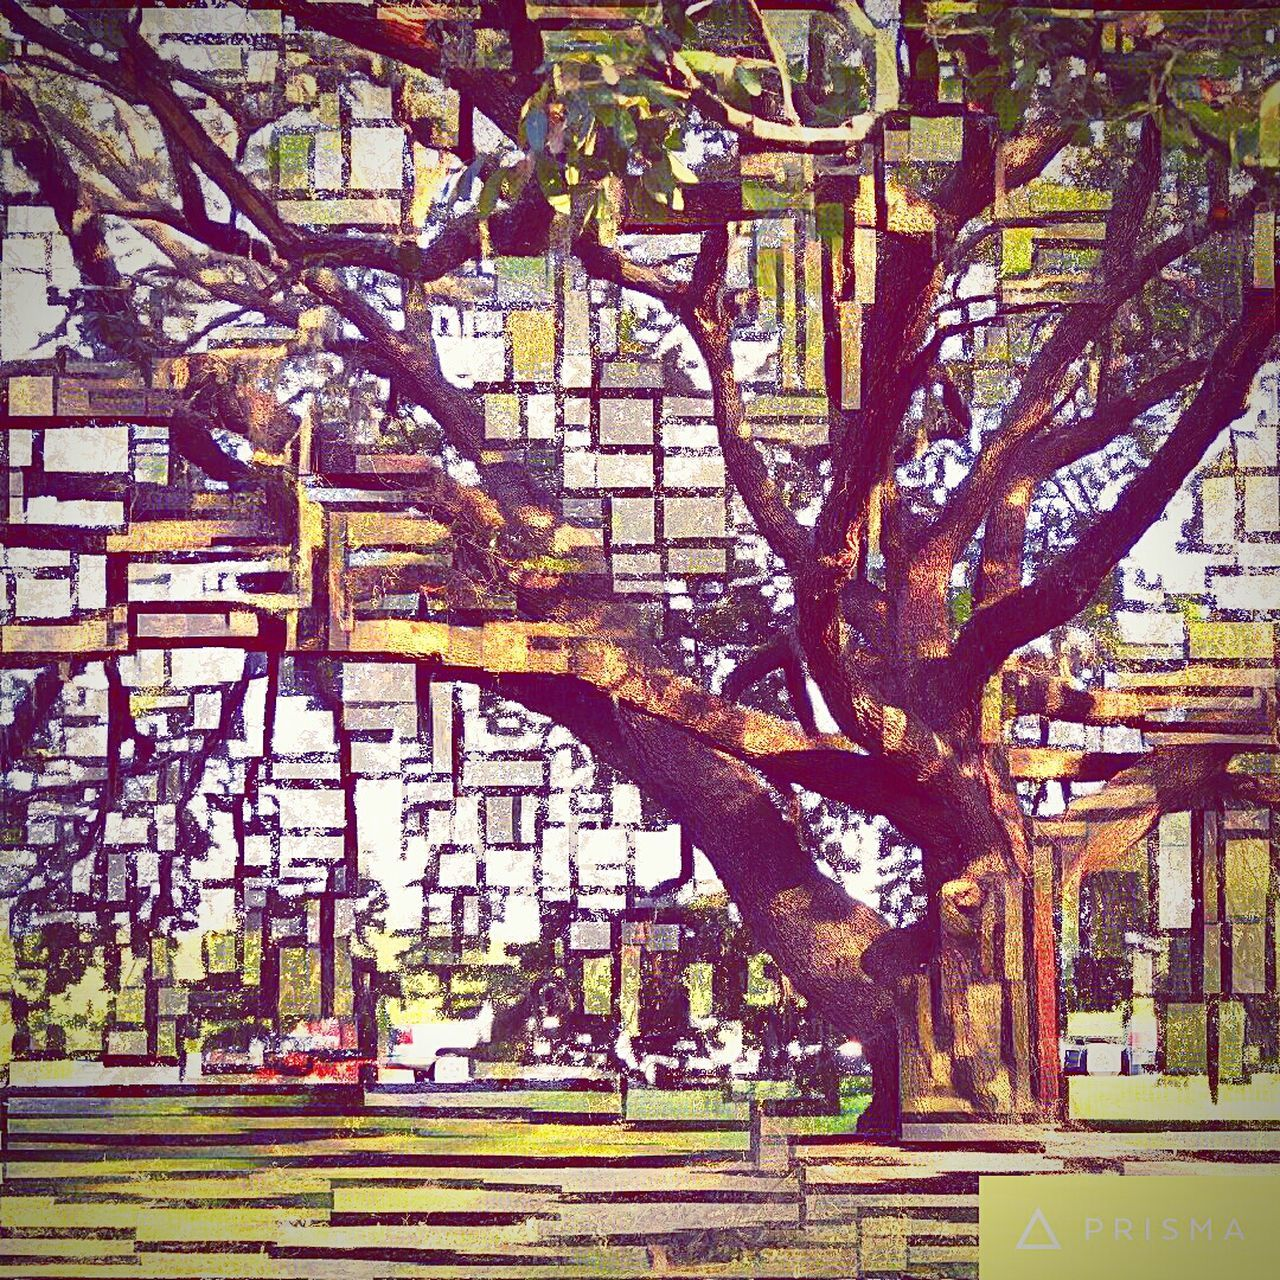 Tree Land Vehicle Transportation Branch Tree Trunk South Carolina From My Point Of View Fine Art Photography Abstract Prisma App Growth Day Outdoors Large Treelined Growing No People